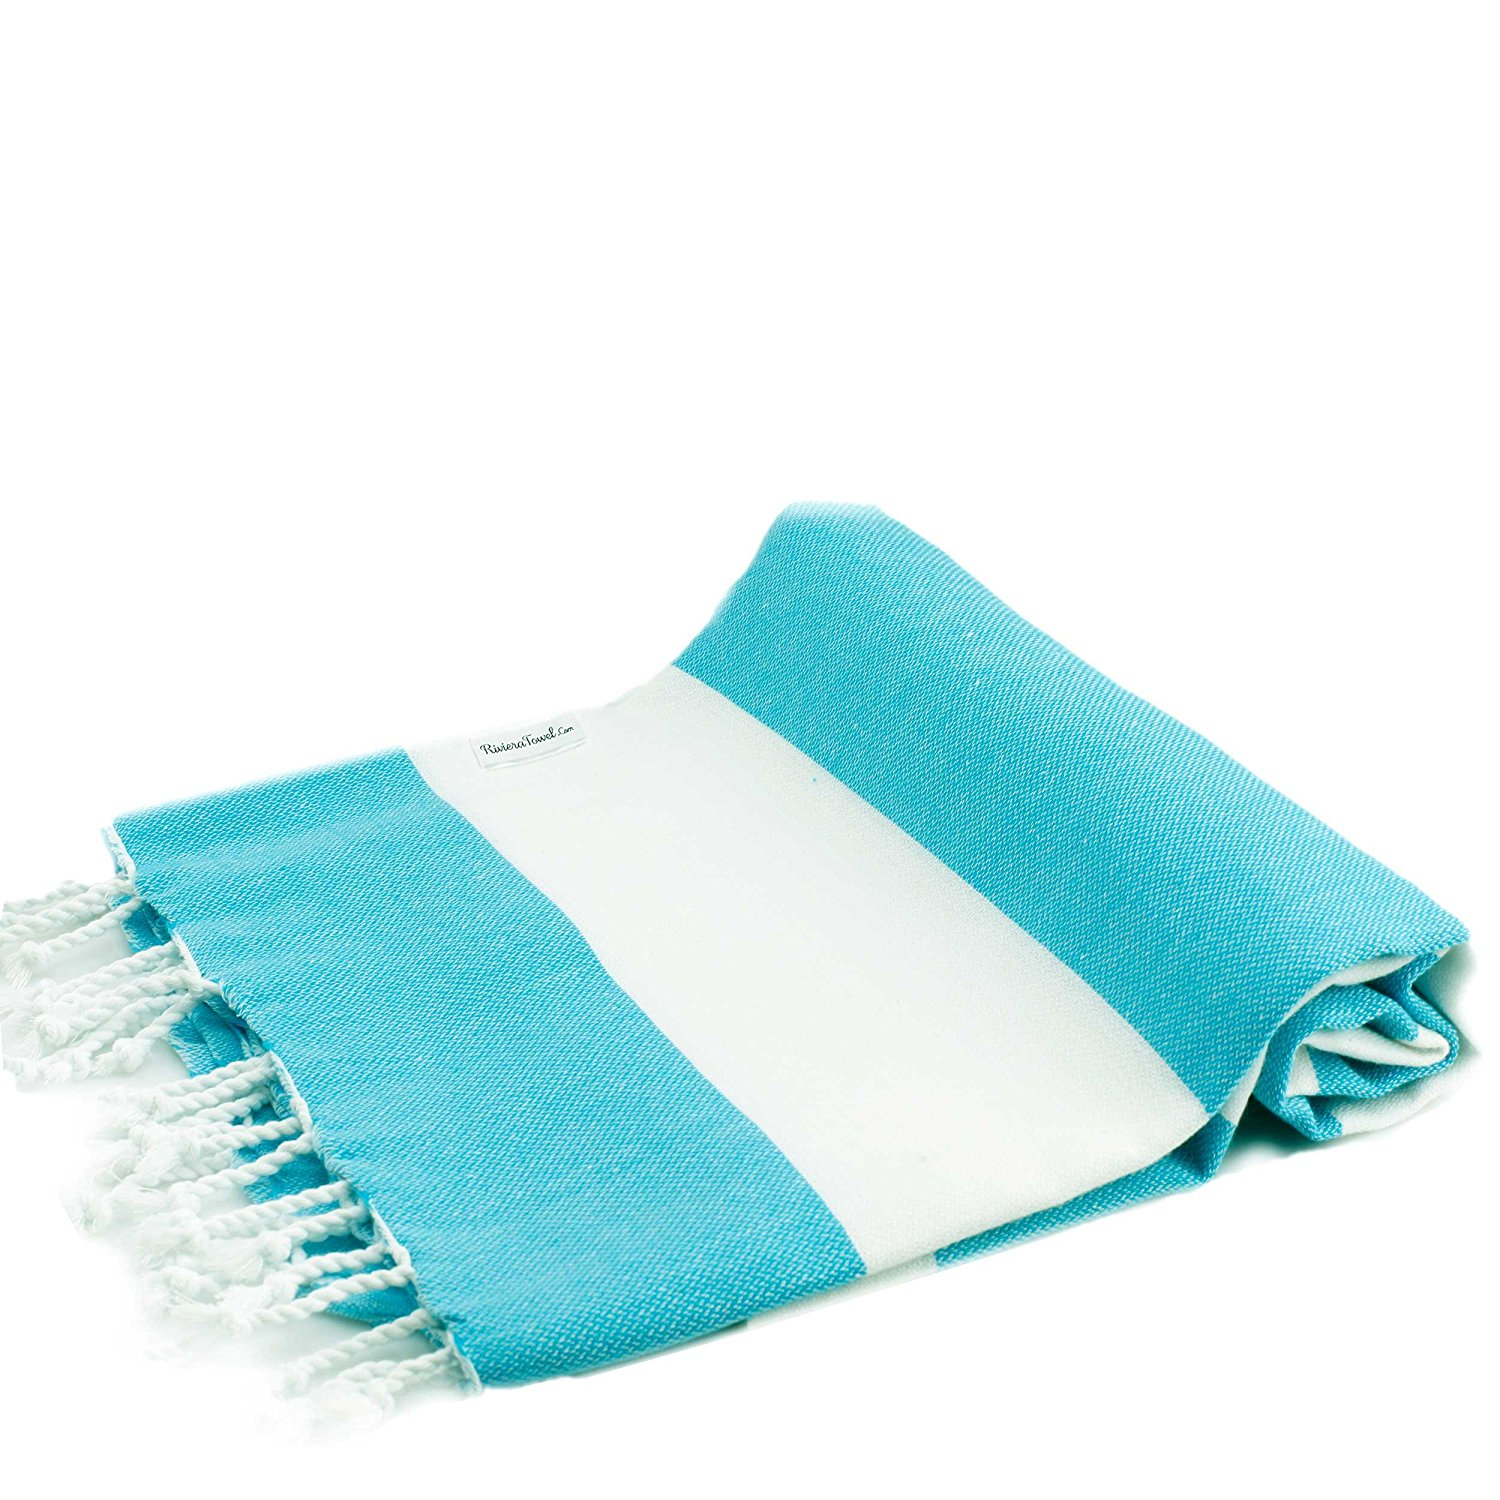 f958eb289e Get Quotations · Biarritz Turquoise Striped Turkish Towel for Bath   Beach  - Swimming Pool - Yoga Pilates -